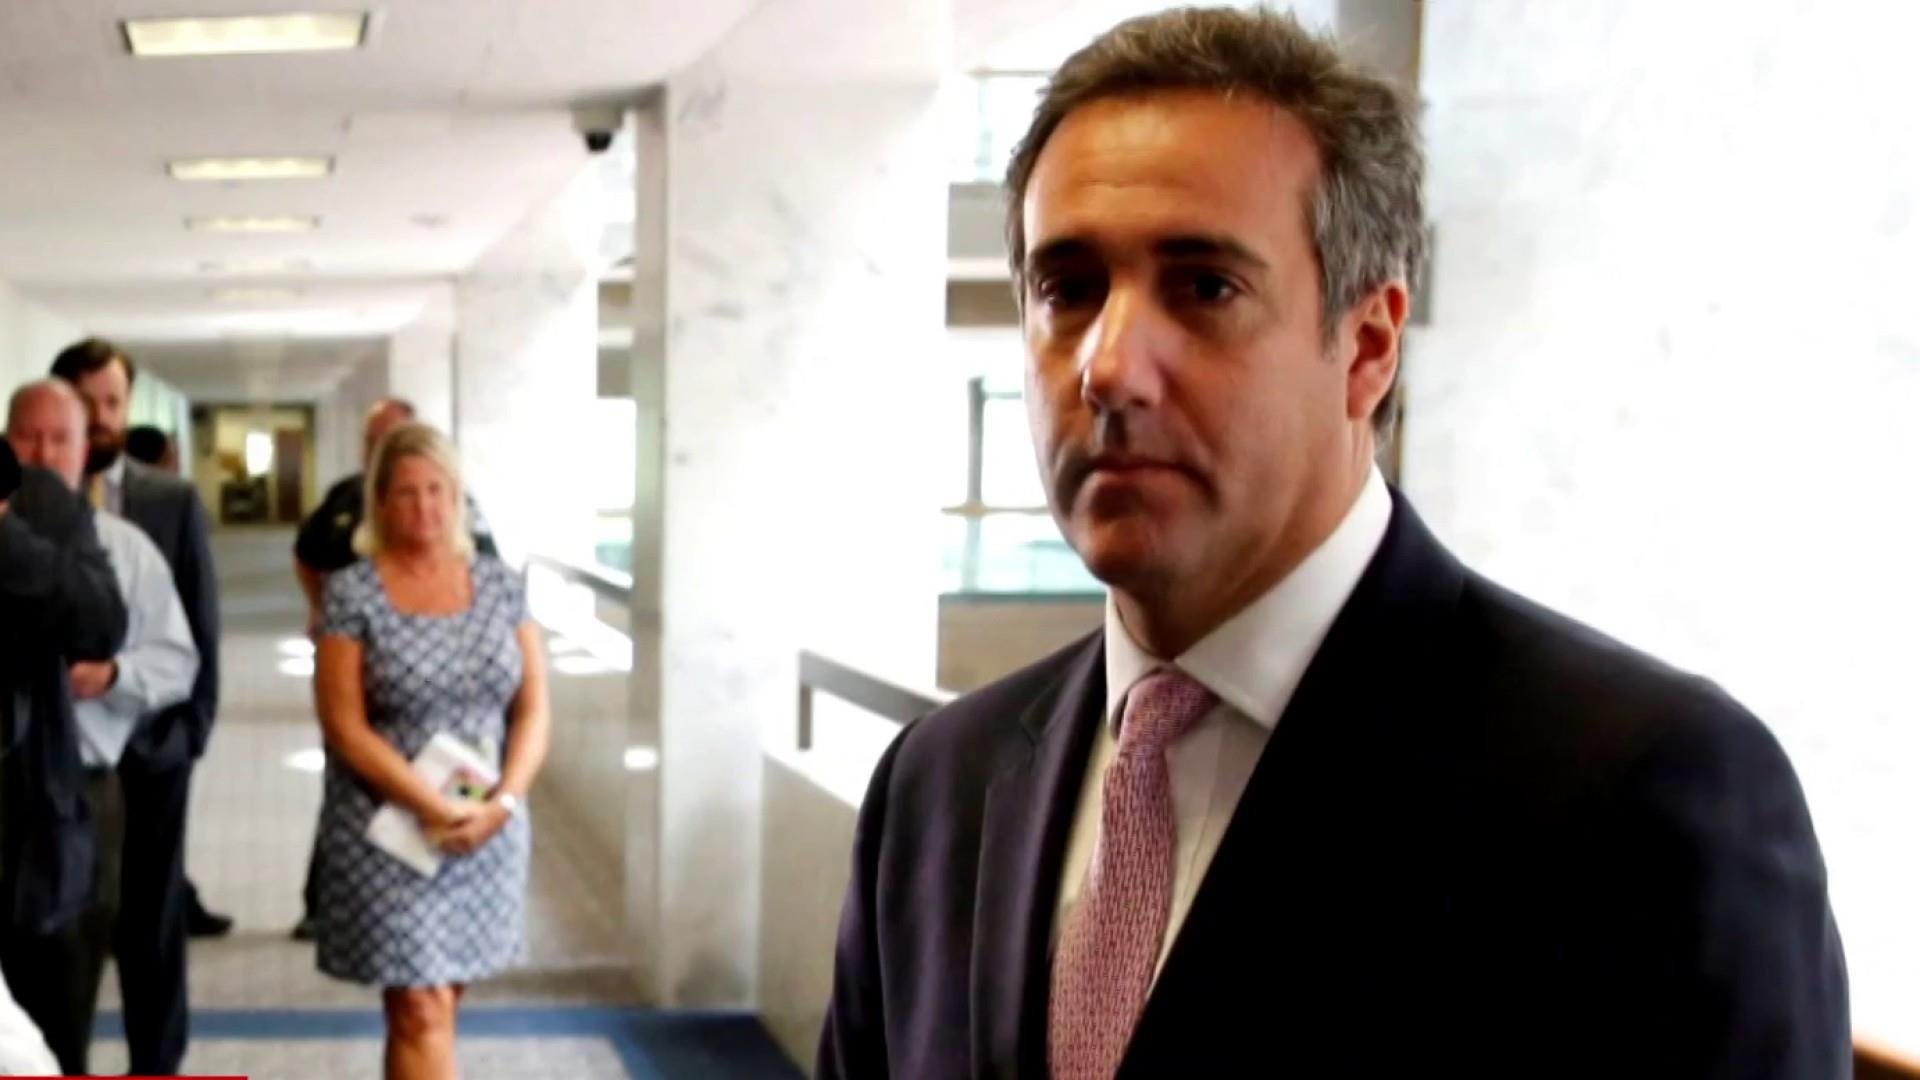 Cohen raided by FBI